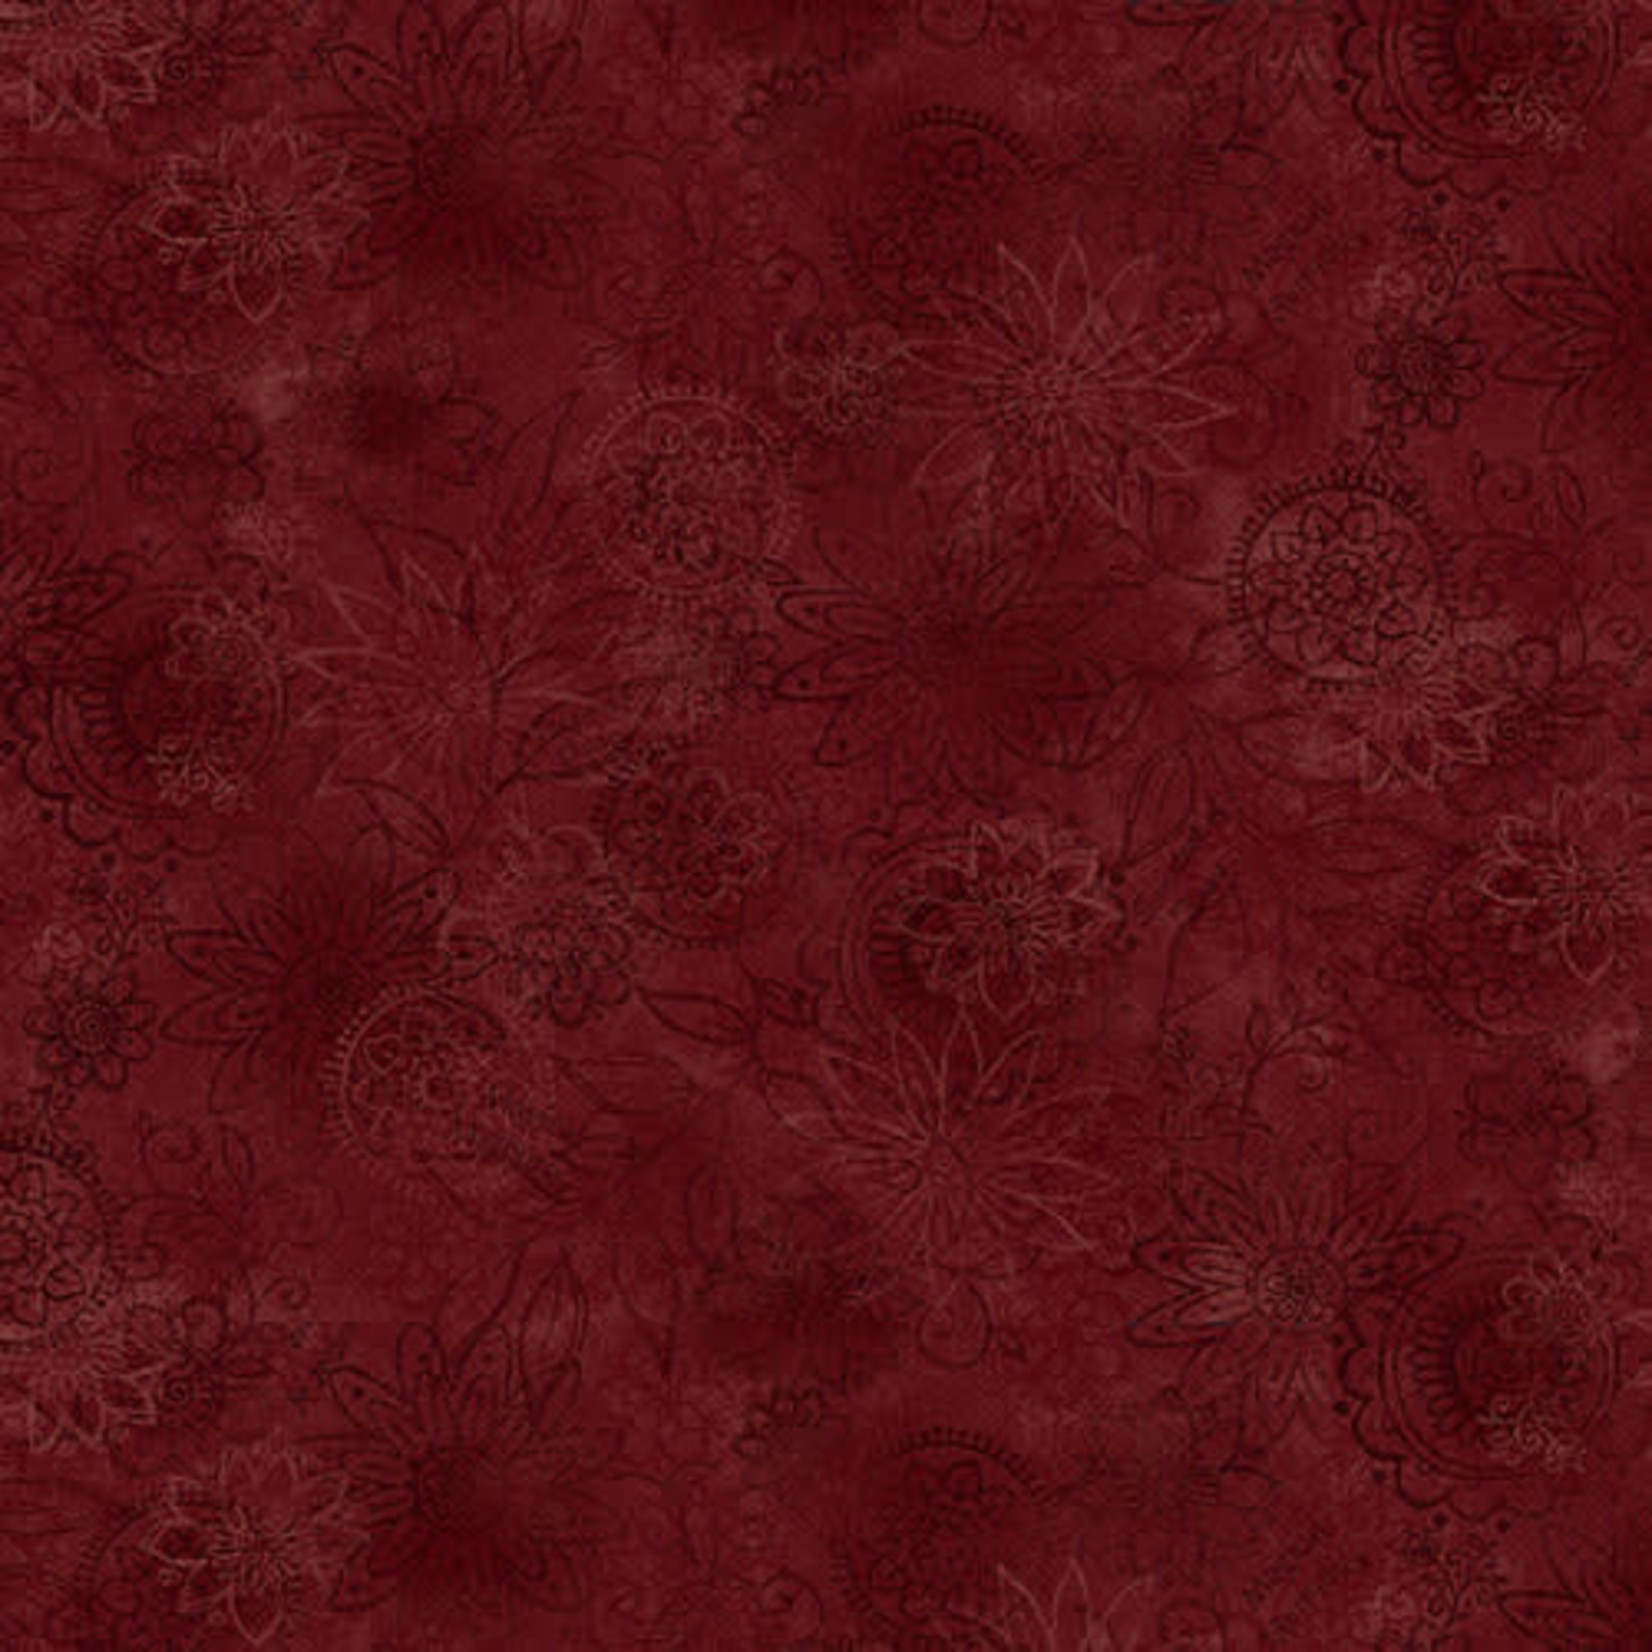 Henry Glass Fabrics Best Of Days - Wall Flower - Red